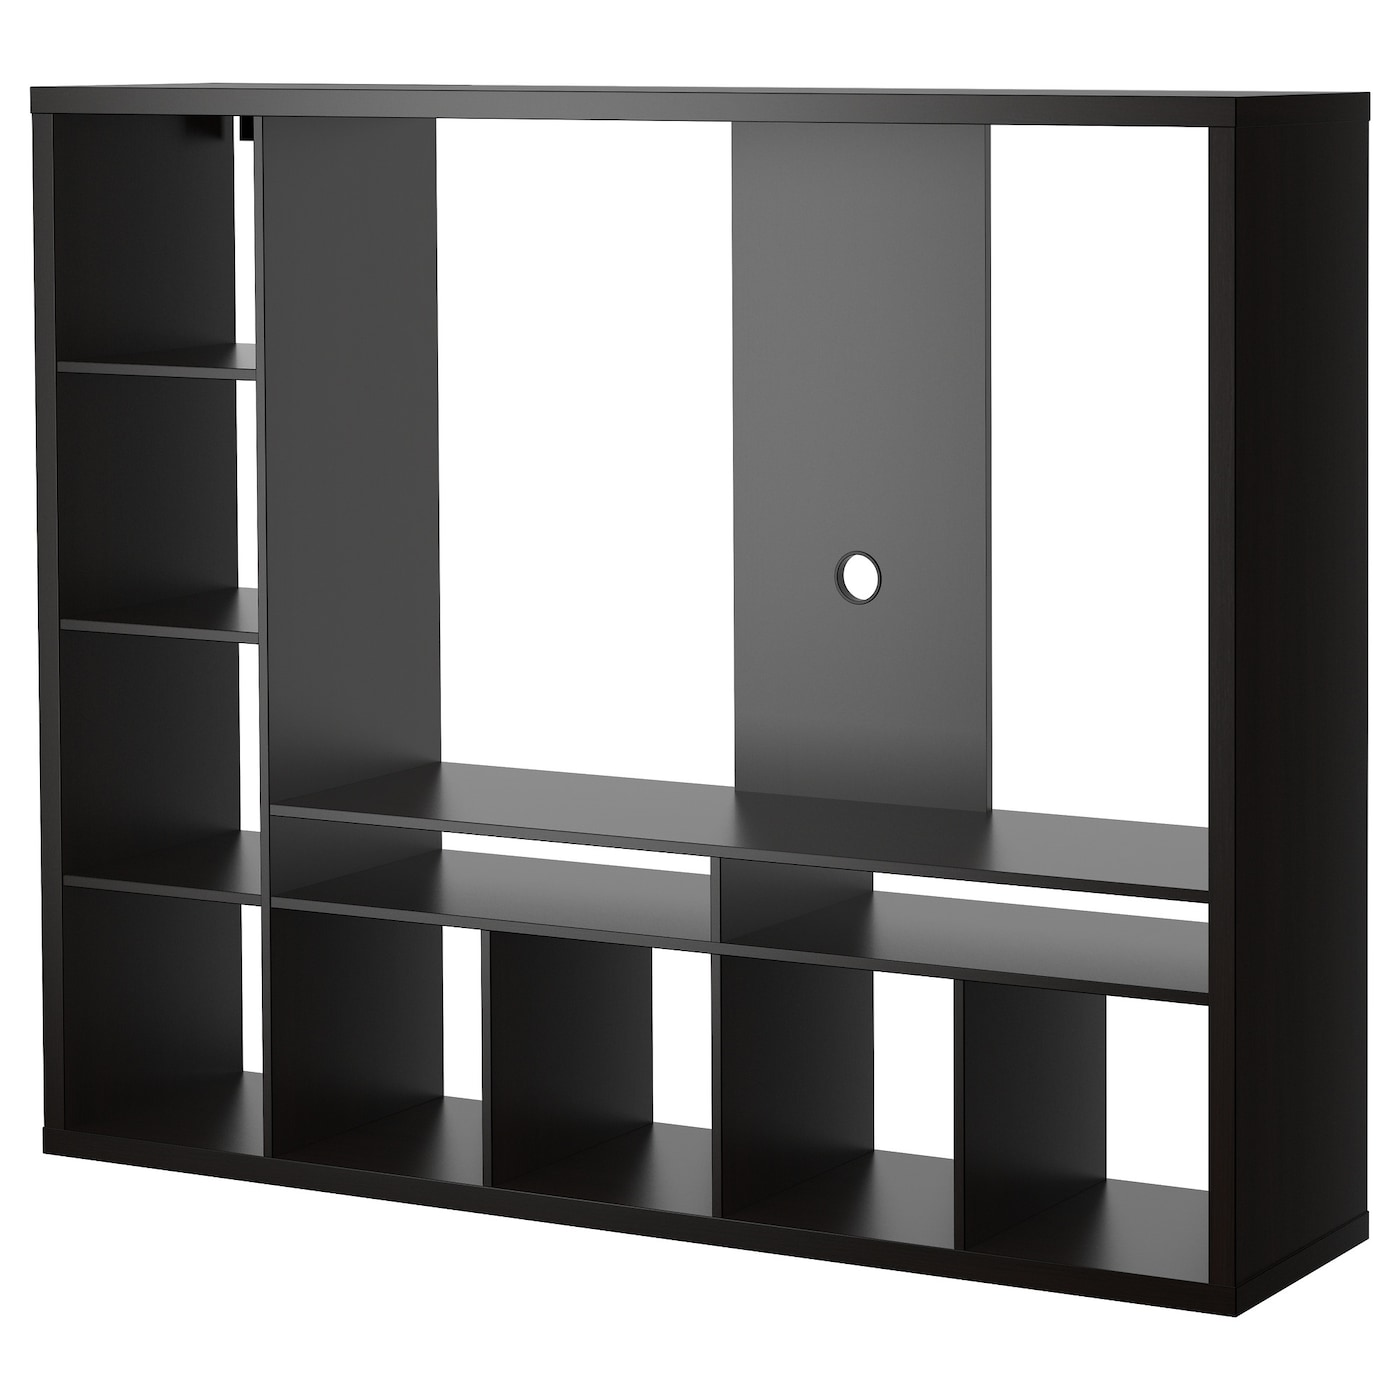 lappland tv storage unit black brown 183 x 39 x 147 cm ikea. Black Bedroom Furniture Sets. Home Design Ideas